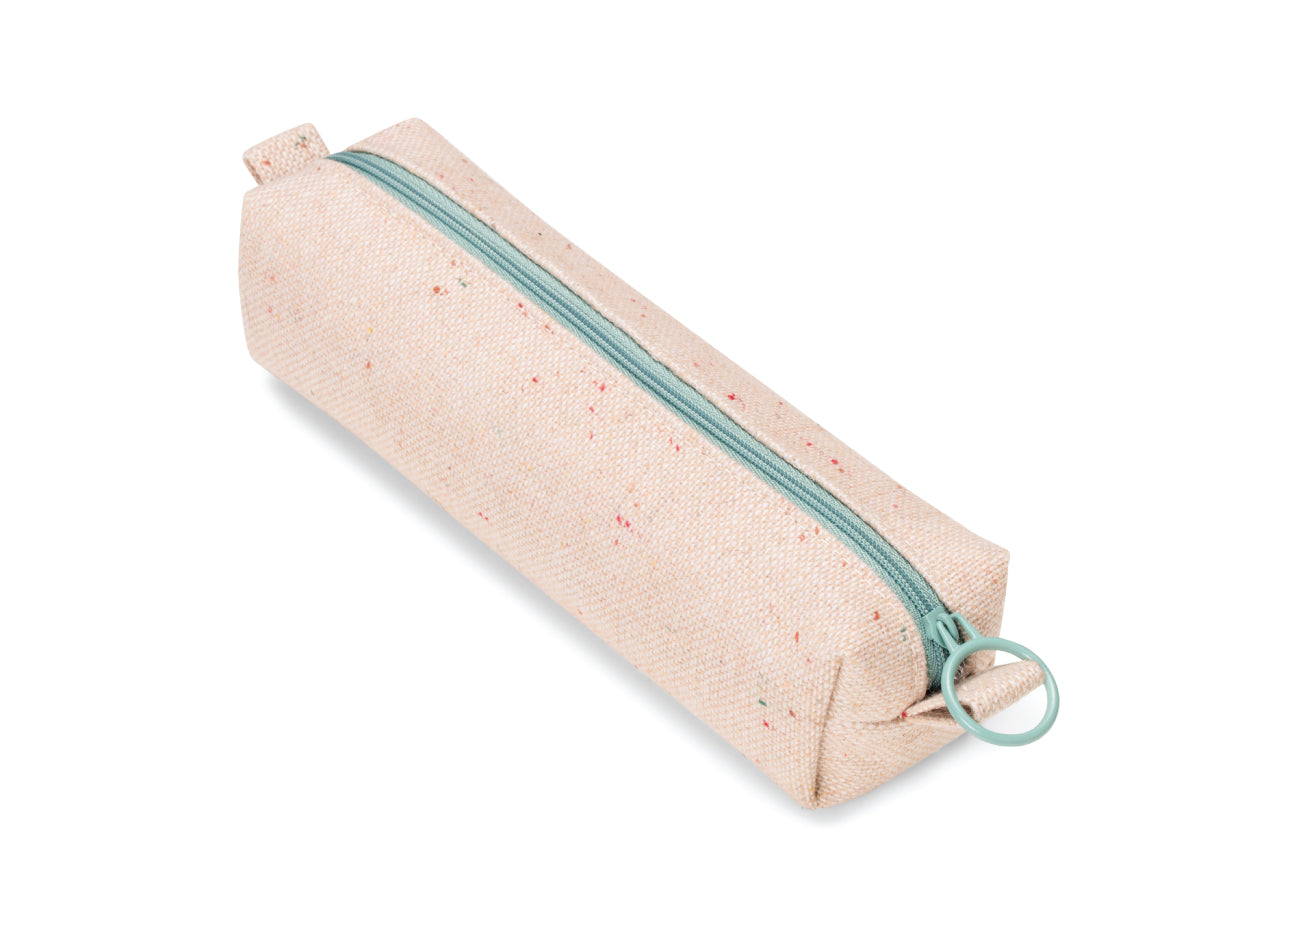 Dusty Mint Pencil Case, Darling Clementine